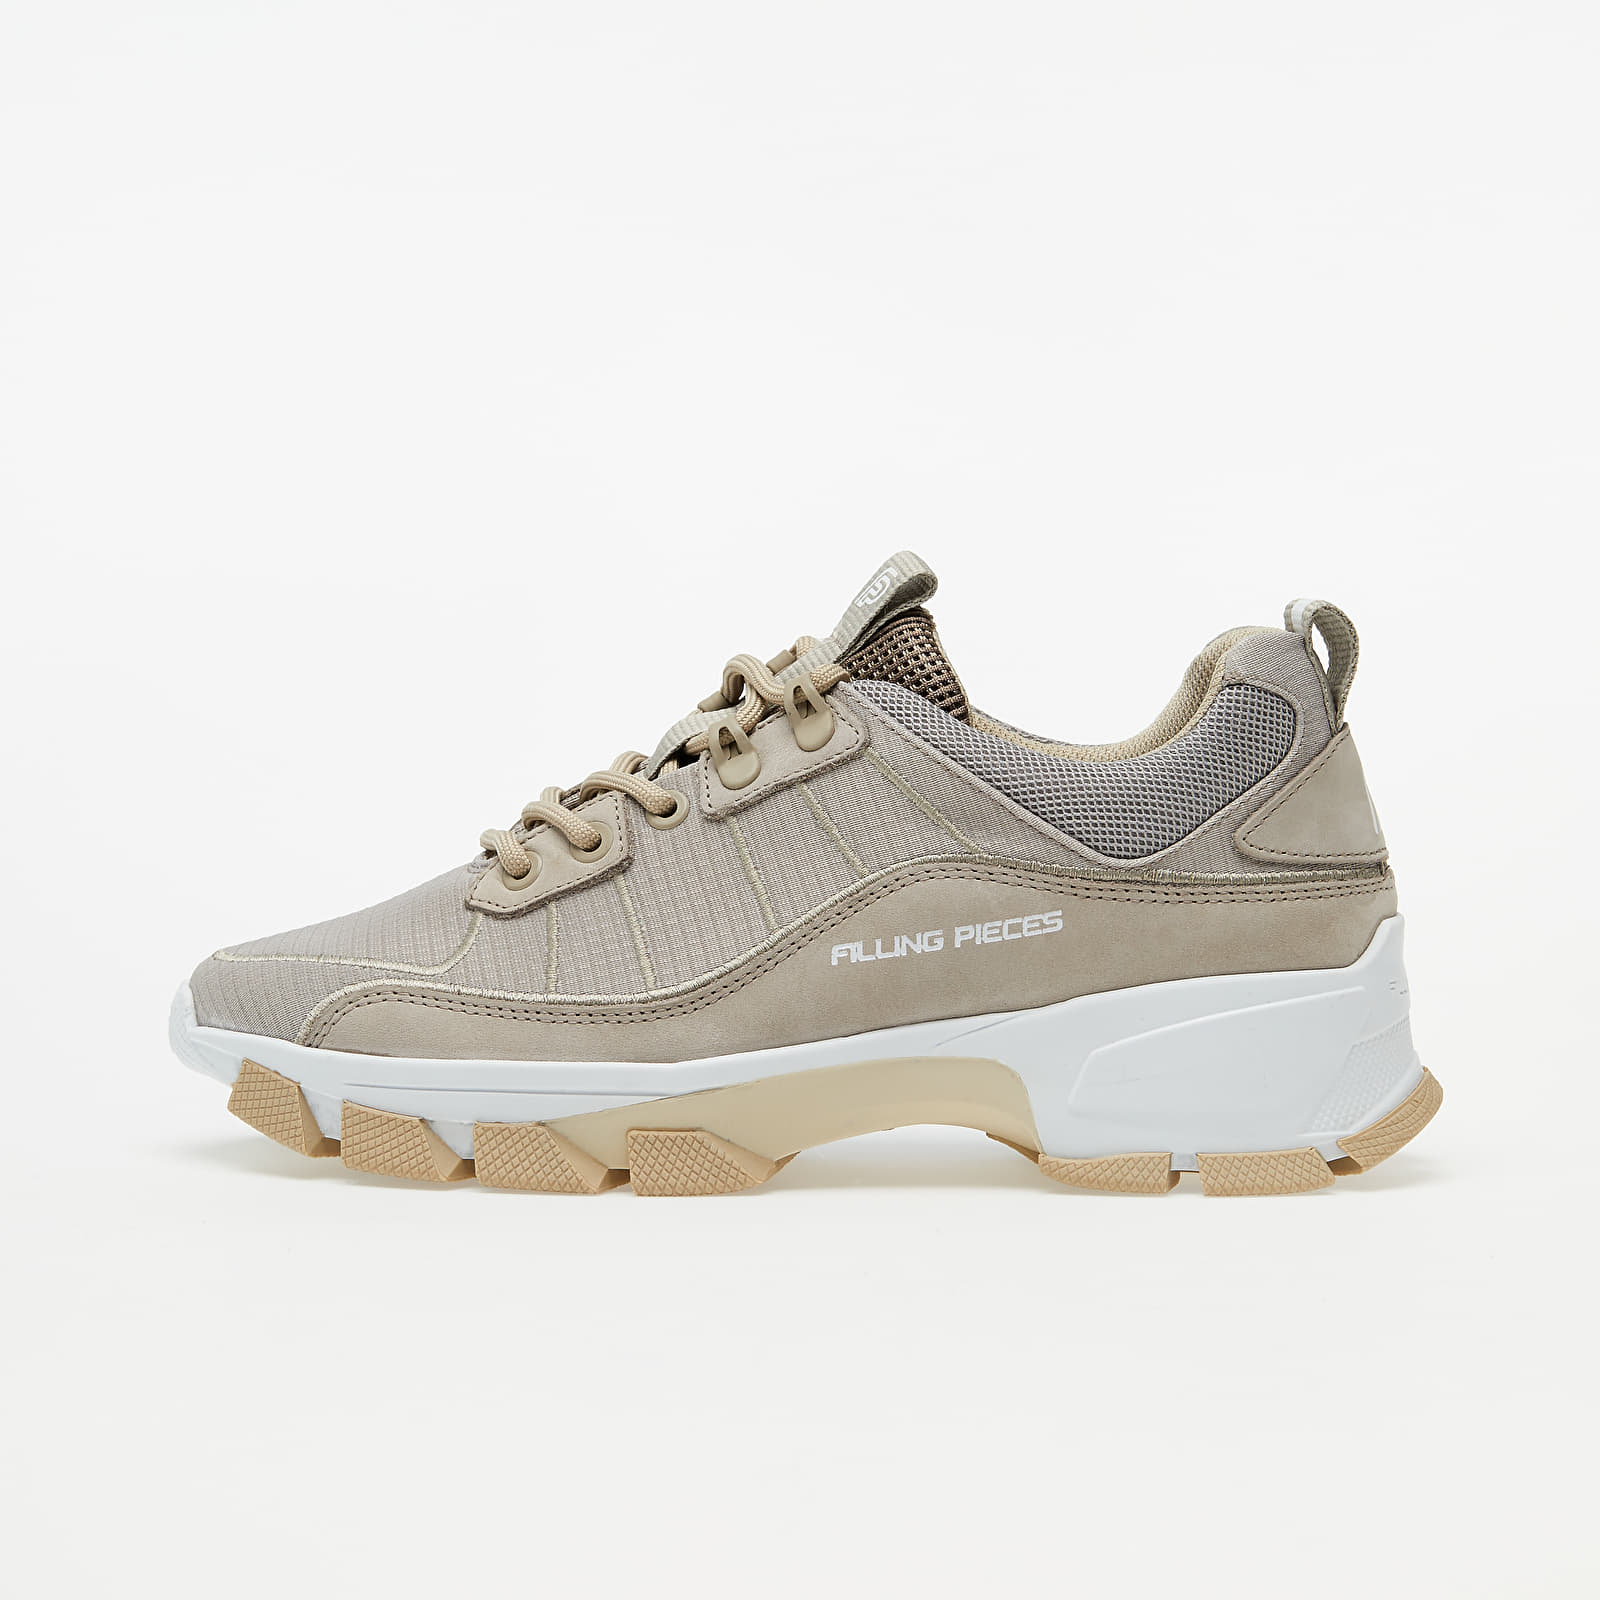 Filling Pieces Lux Radar Kite Beige 429280419190